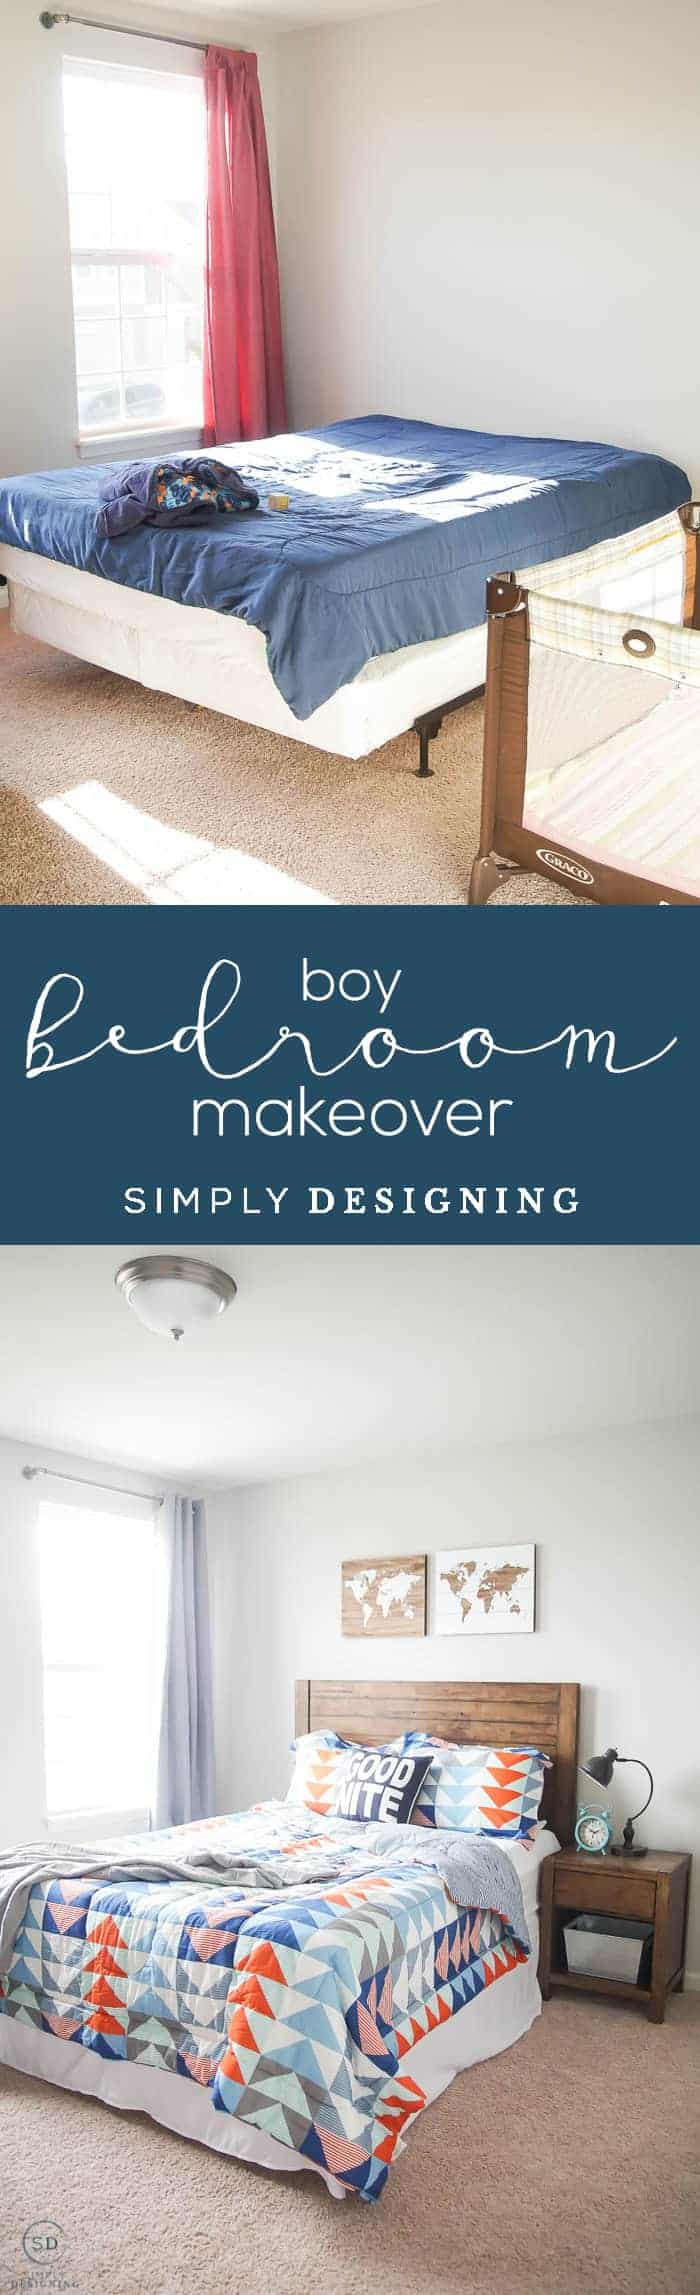 Before & After : Cool Boy Bedroom Idea - Boy Bedroom Makeover - boy bedroom idea on a budget - awesome boy bedroom idea - #ad #BHGLiveBetter #BHGatWalmart @BHGLiveBetter @walmart